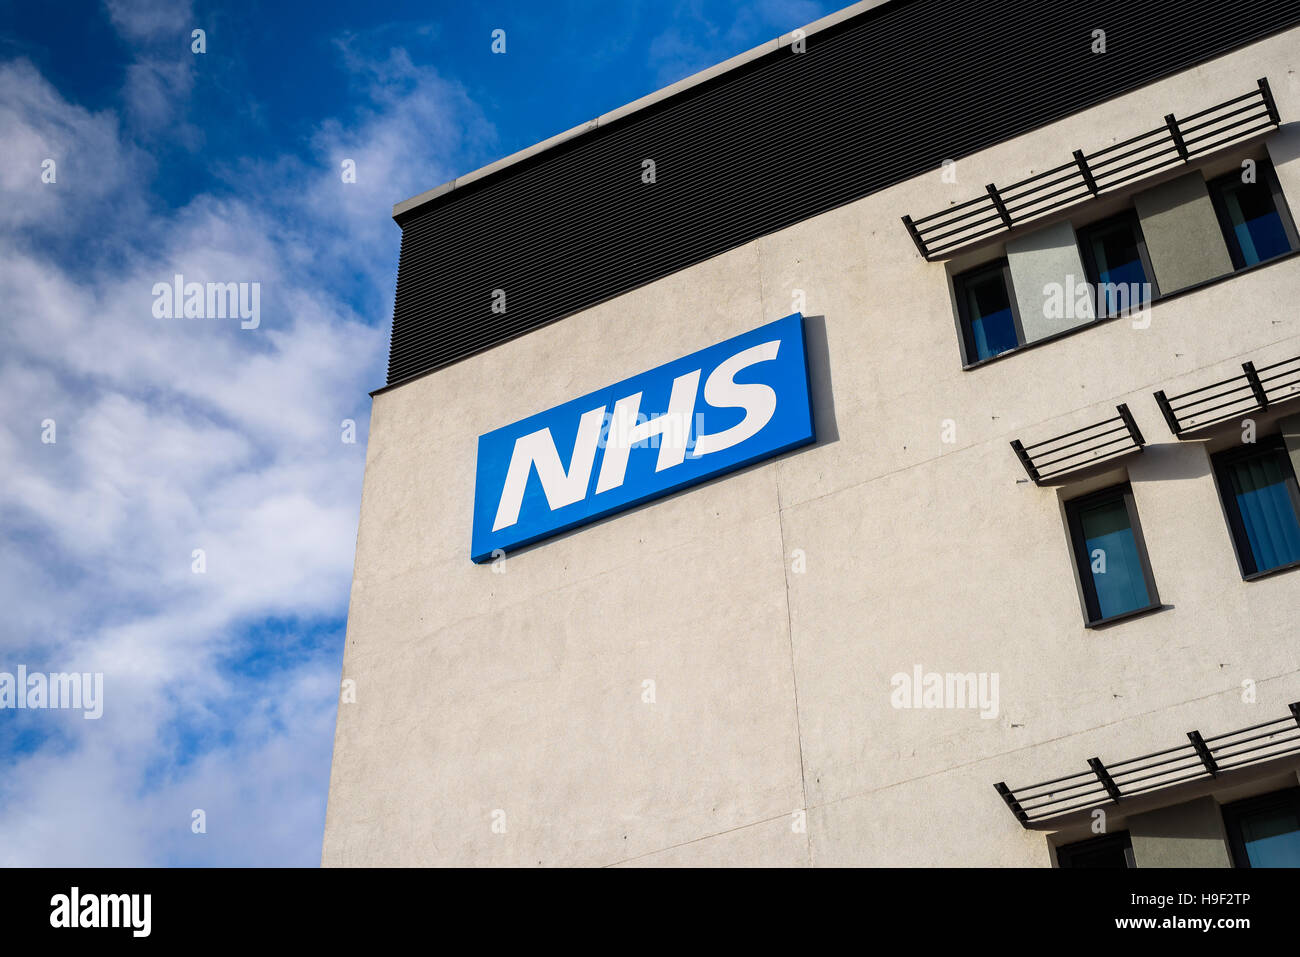 View of the NHS (National Health Service)  logo  on a modern building. *EDITORIAL ONLY* - Stock Image